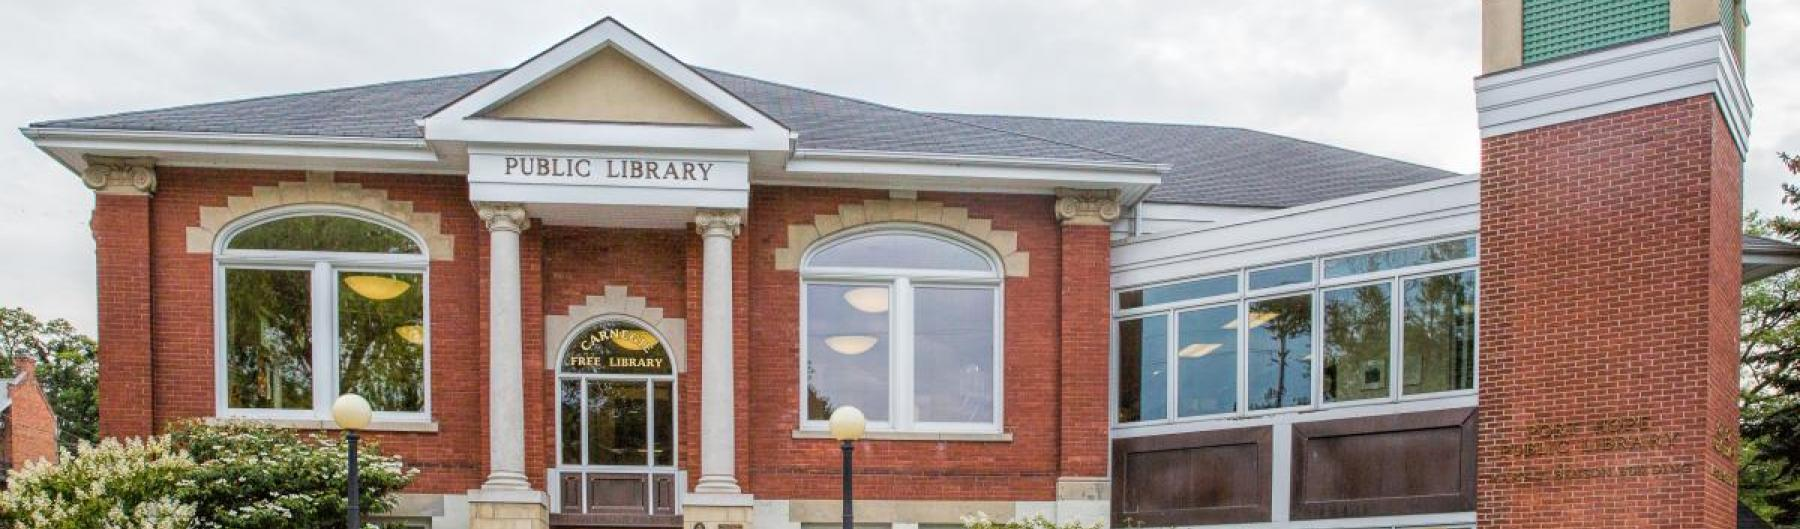 Port Hope Public Library - Port Hope Branch